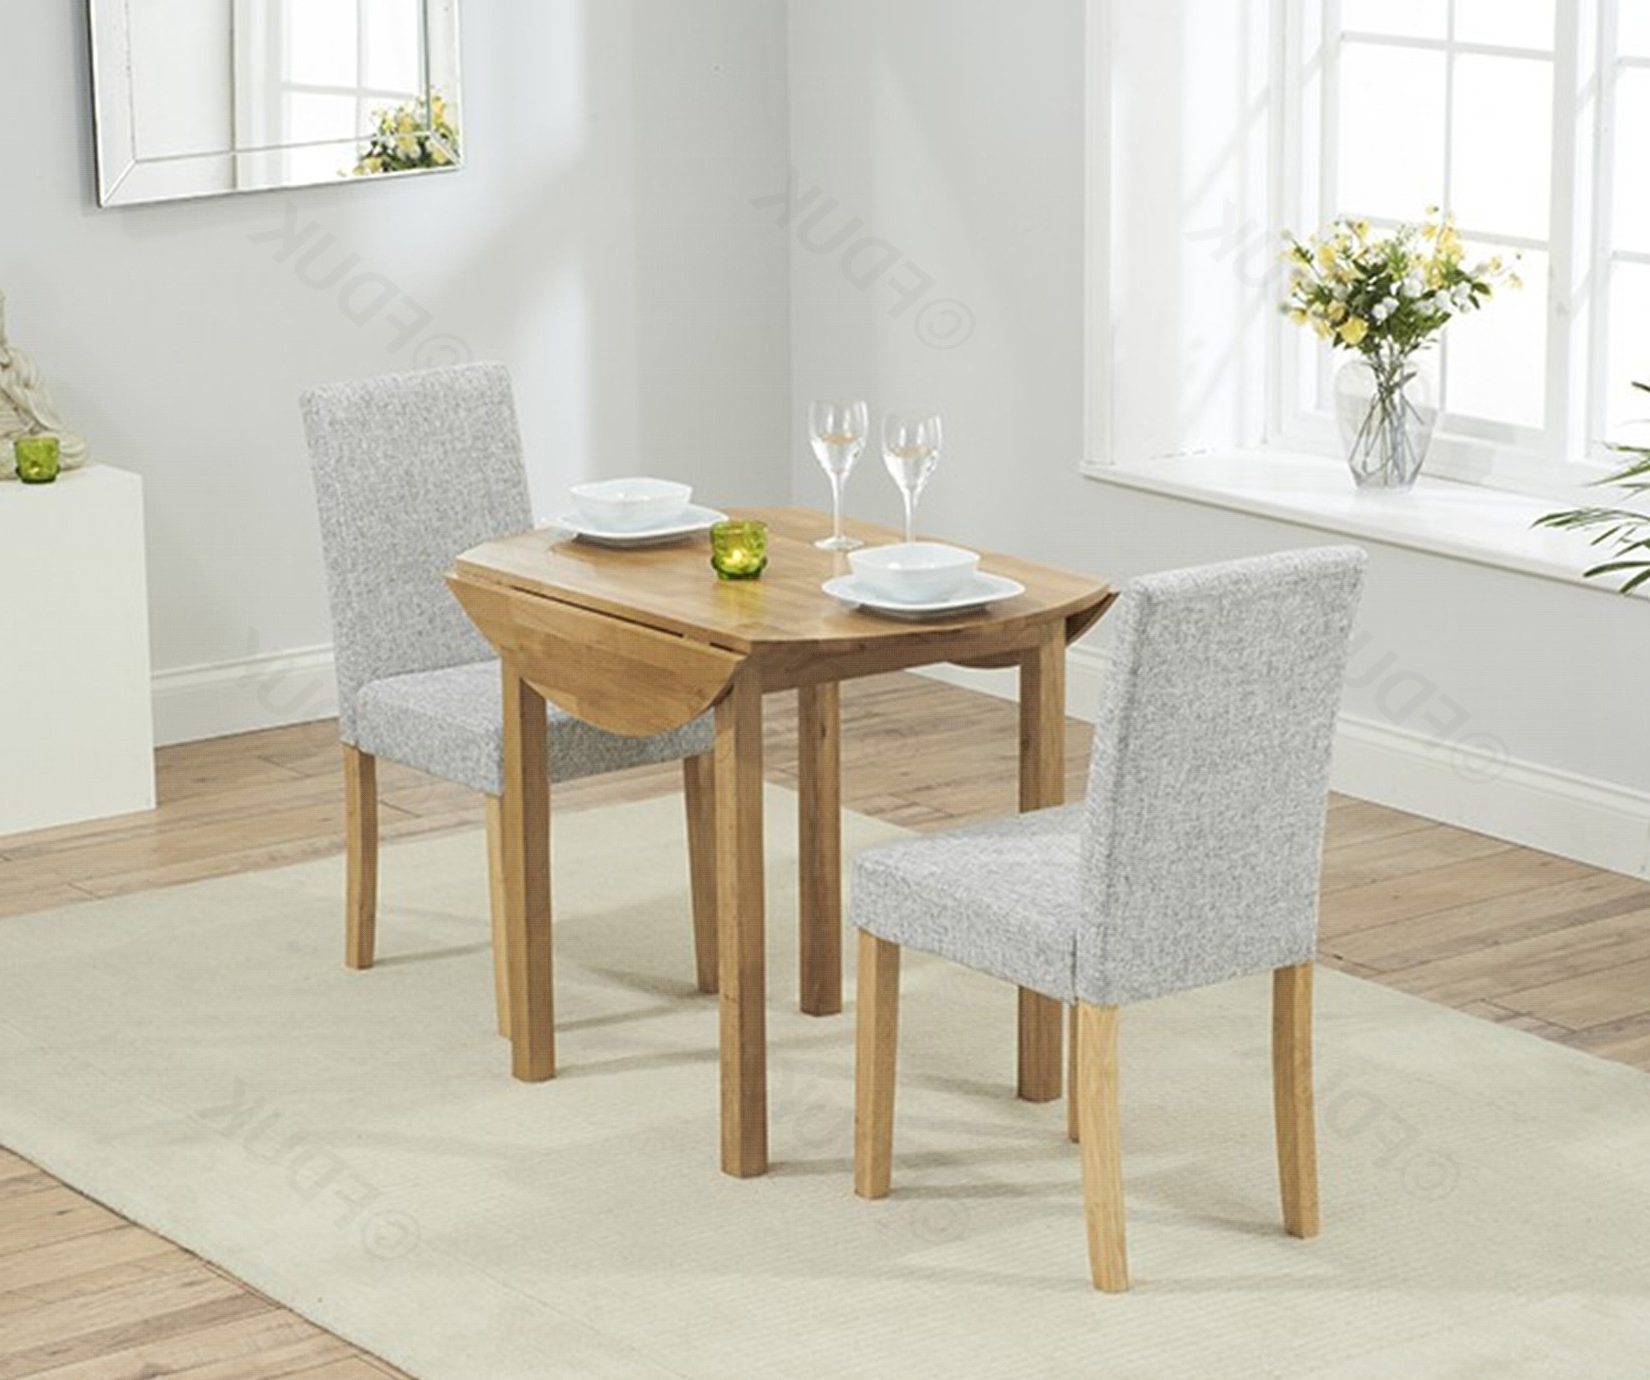 Oak Round Dining Tables And Chairs Pertaining To Most Up To Date Mark Harris Promo (View 10 of 25)